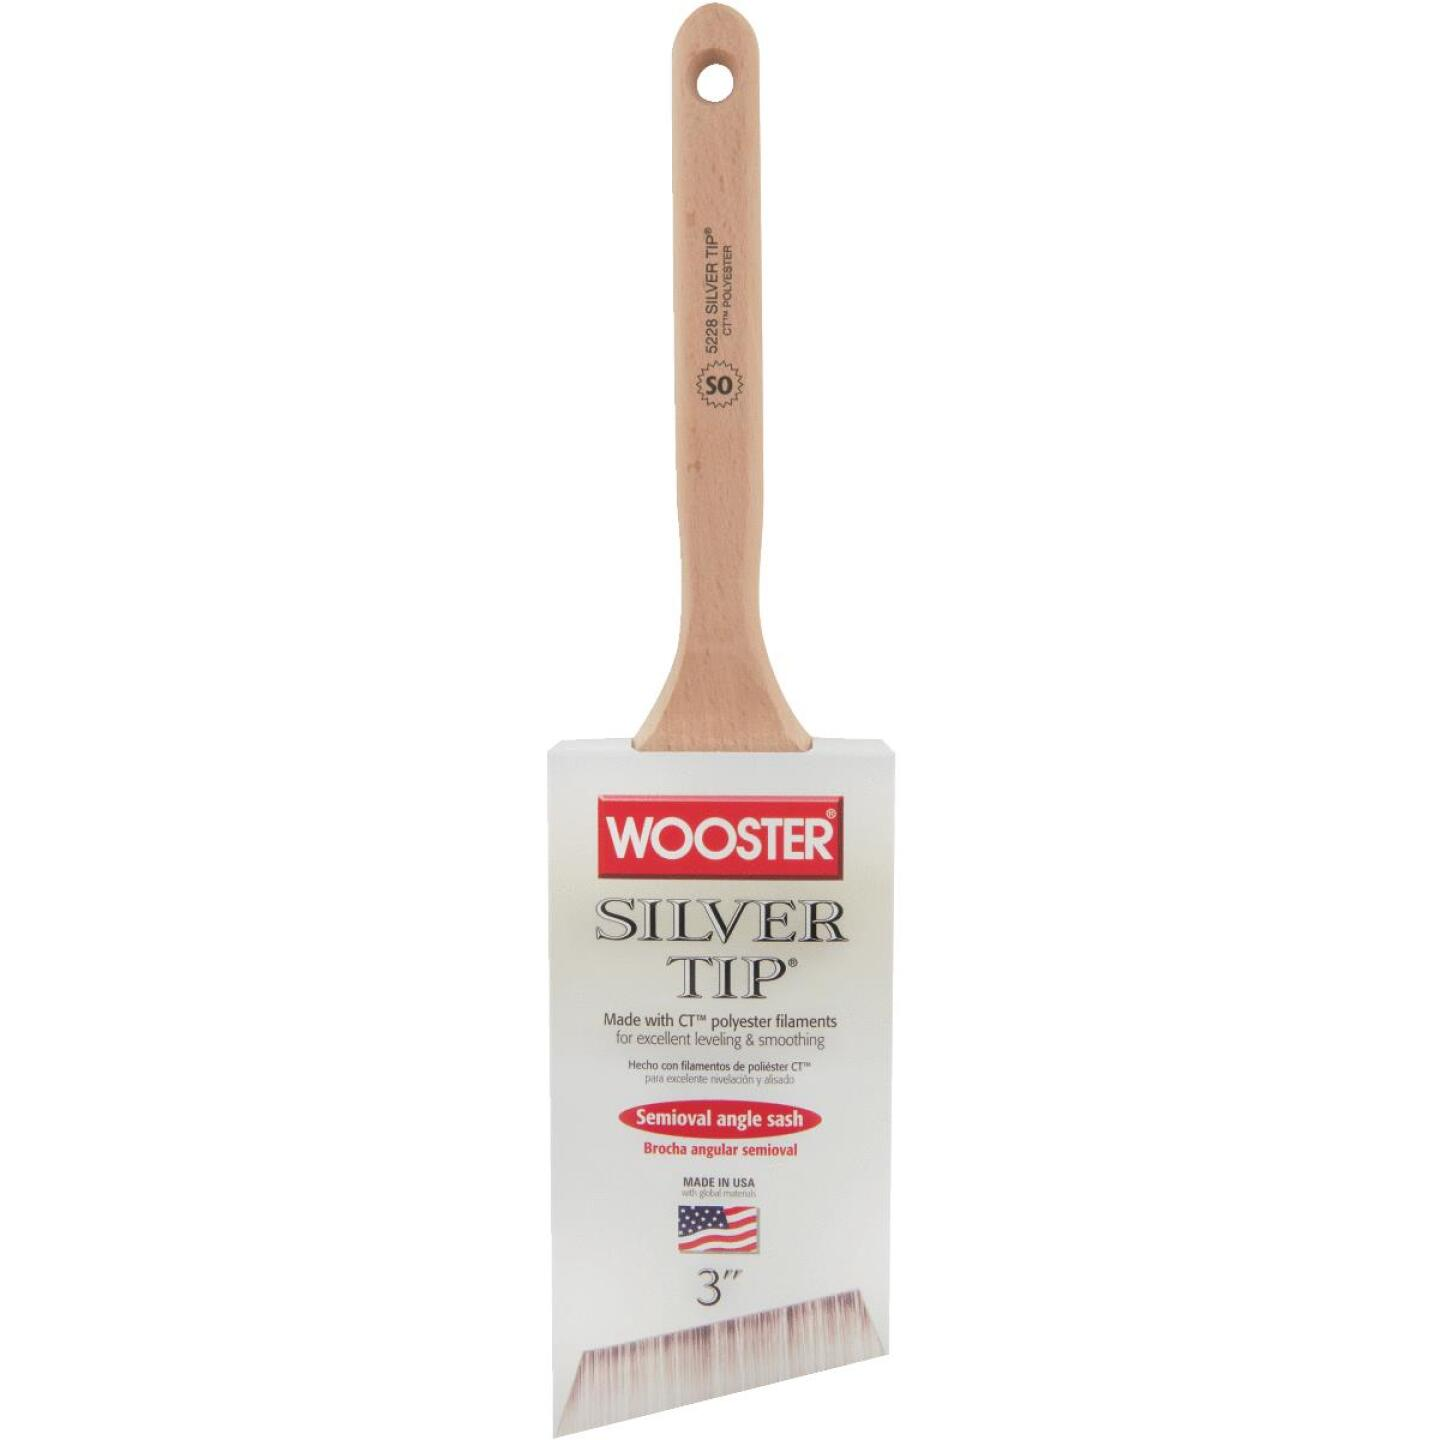 Wooster Silver Tip 3 In. Semi-Oval Angle Sash Brush Image 1